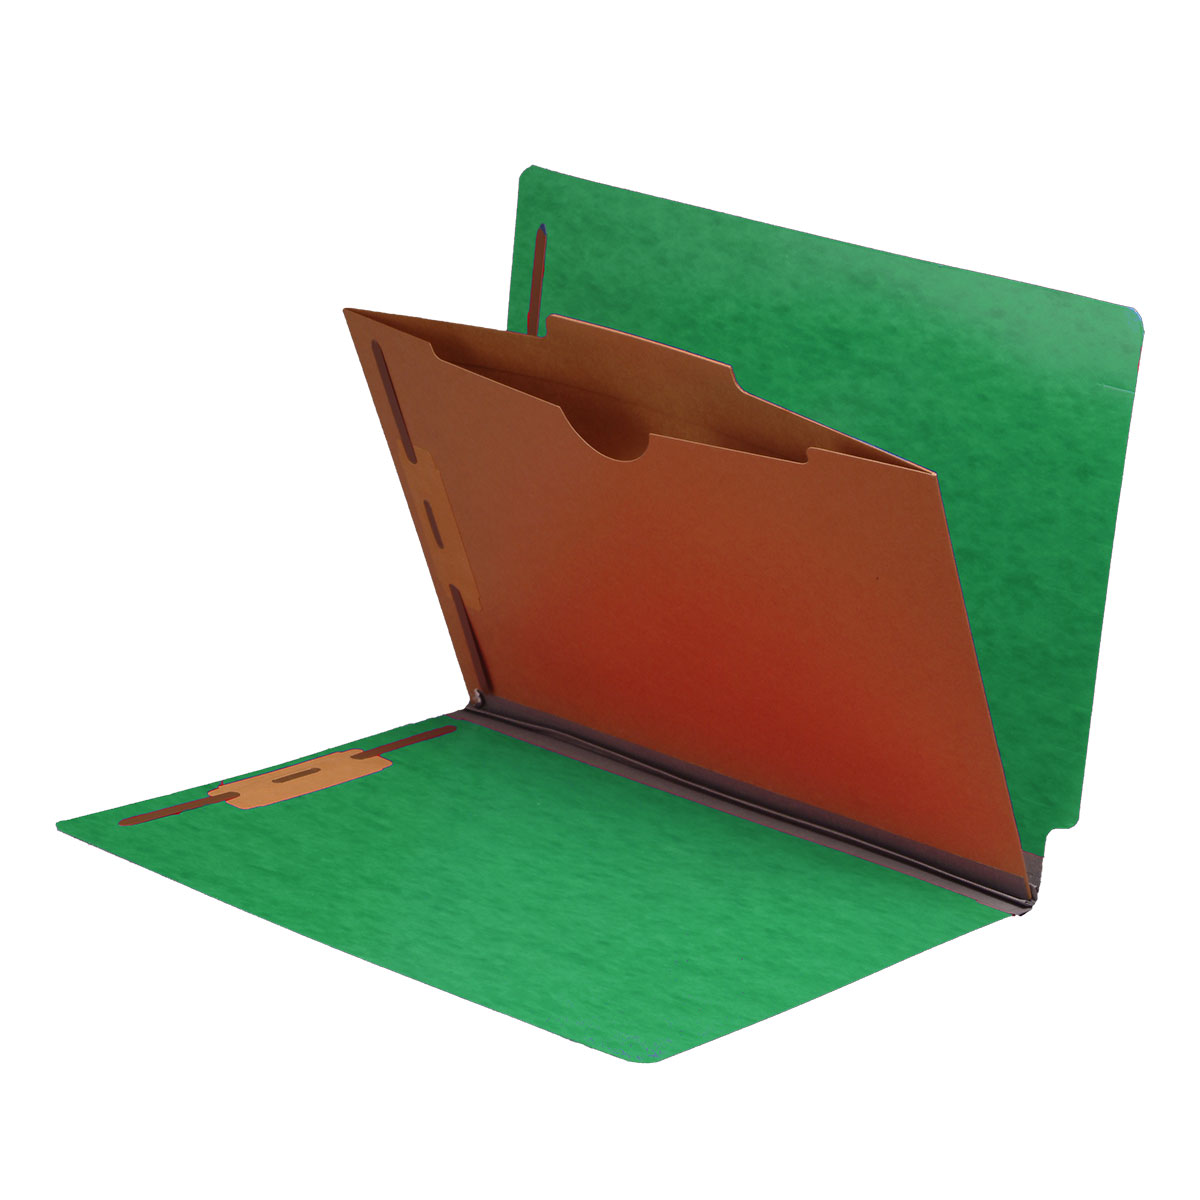 S-9040-GRN - Type I Pressboard Classification Folders, Full Cut End Tab, Letter Size, 1 Pocket Divider, Green (Box of 10)